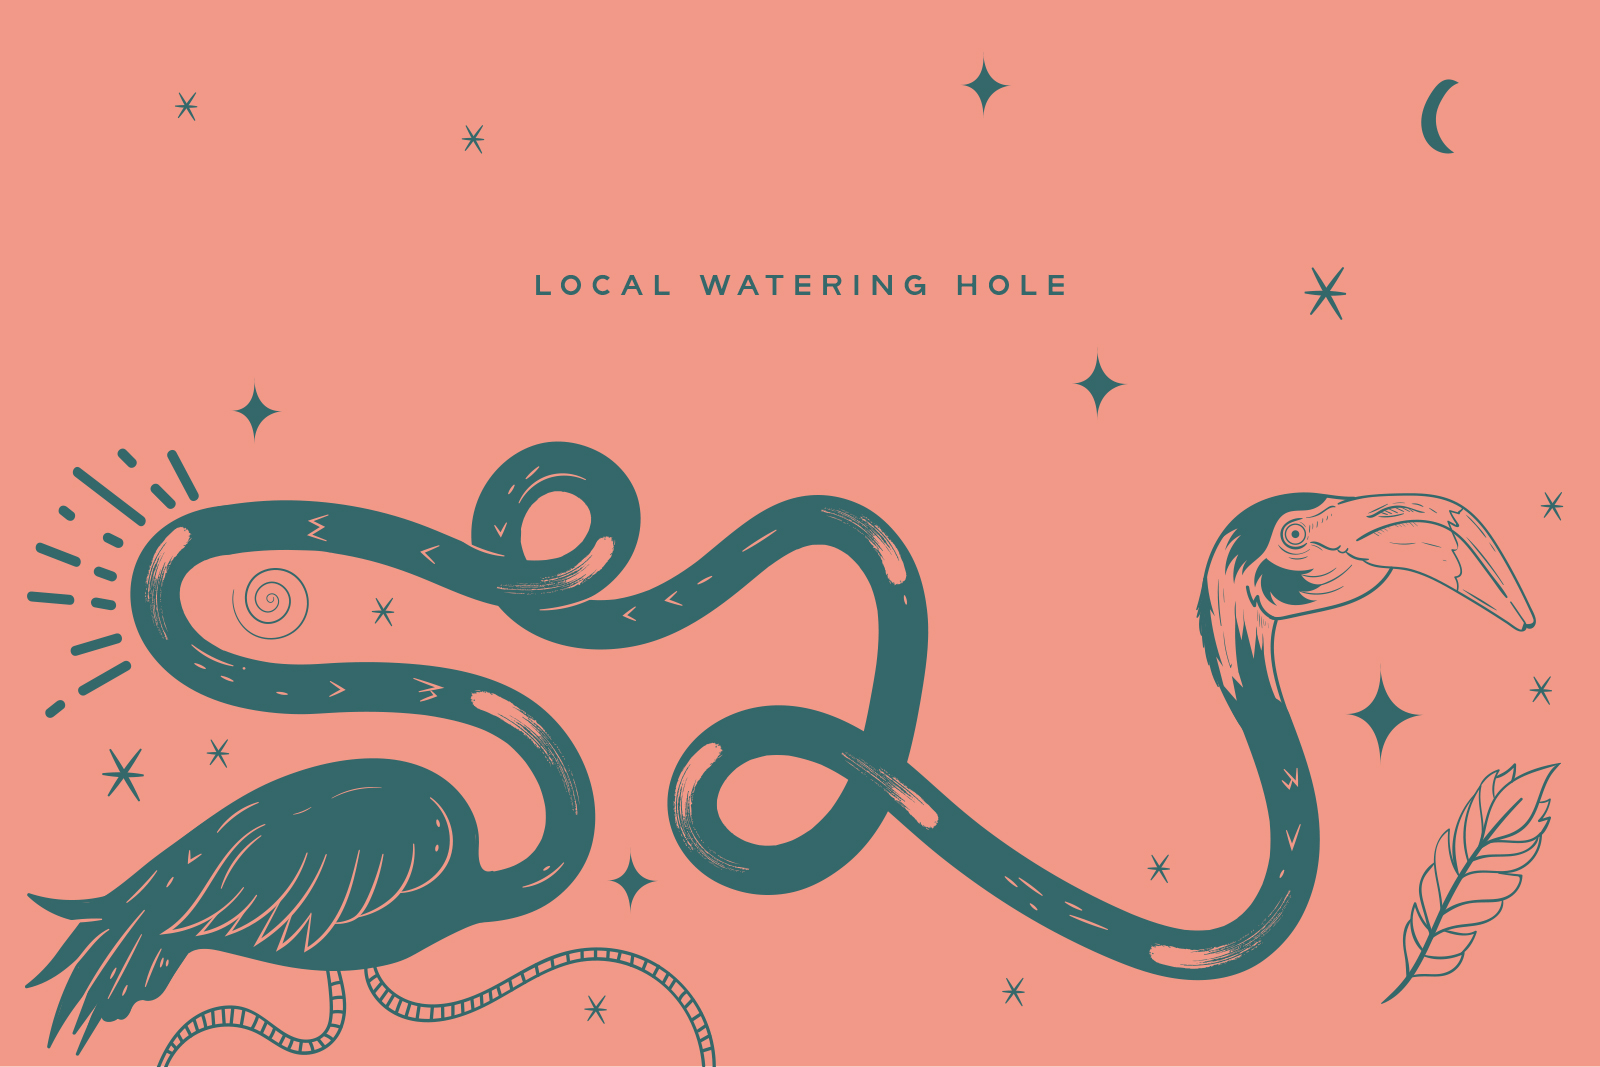 local_watering_hole